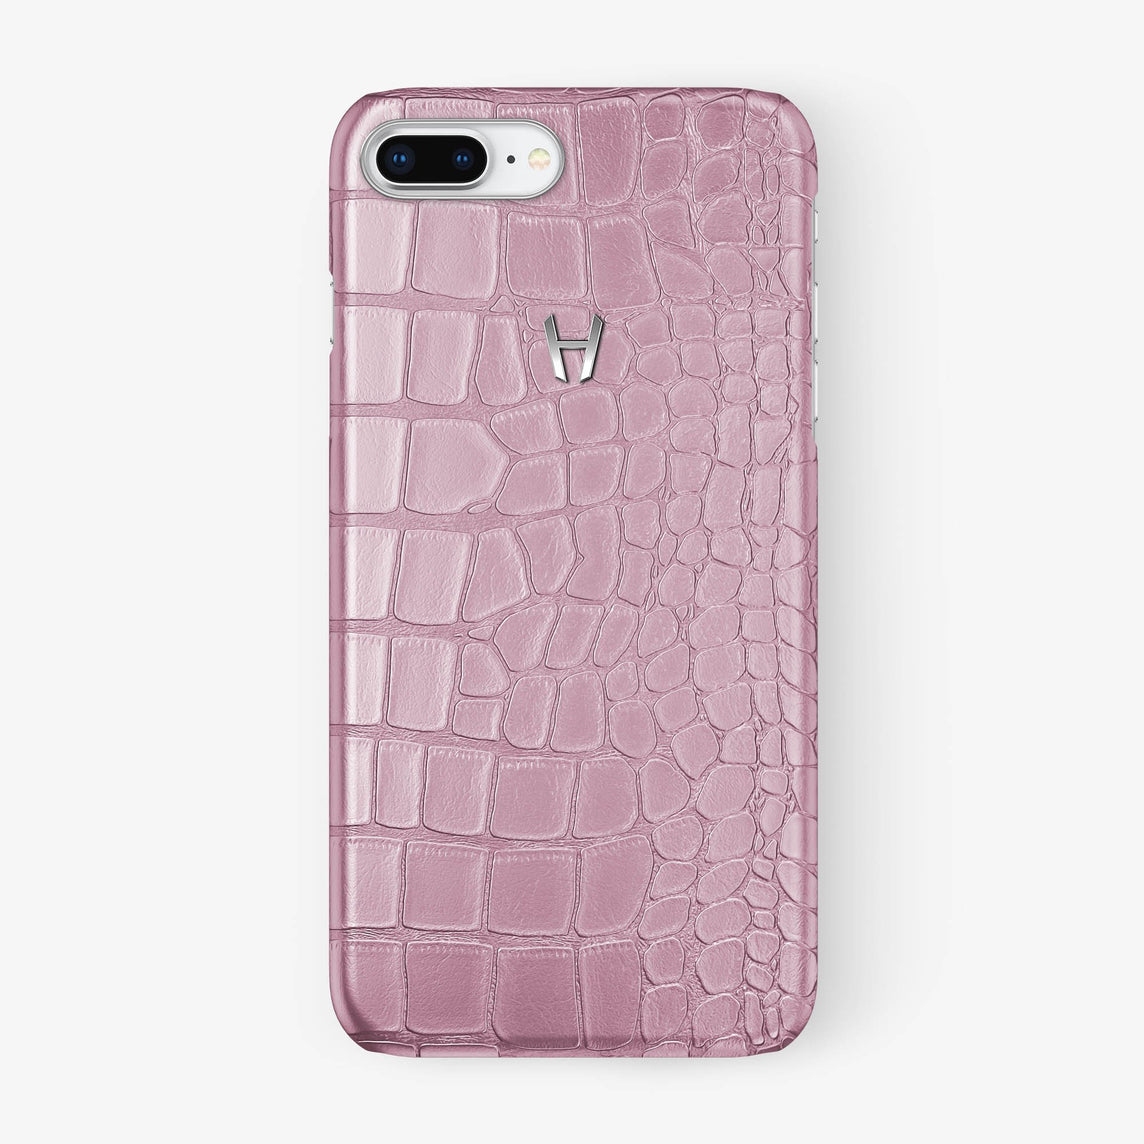 Alligator Case iPhone 7/8 Plus | Pink - Stainless Steel